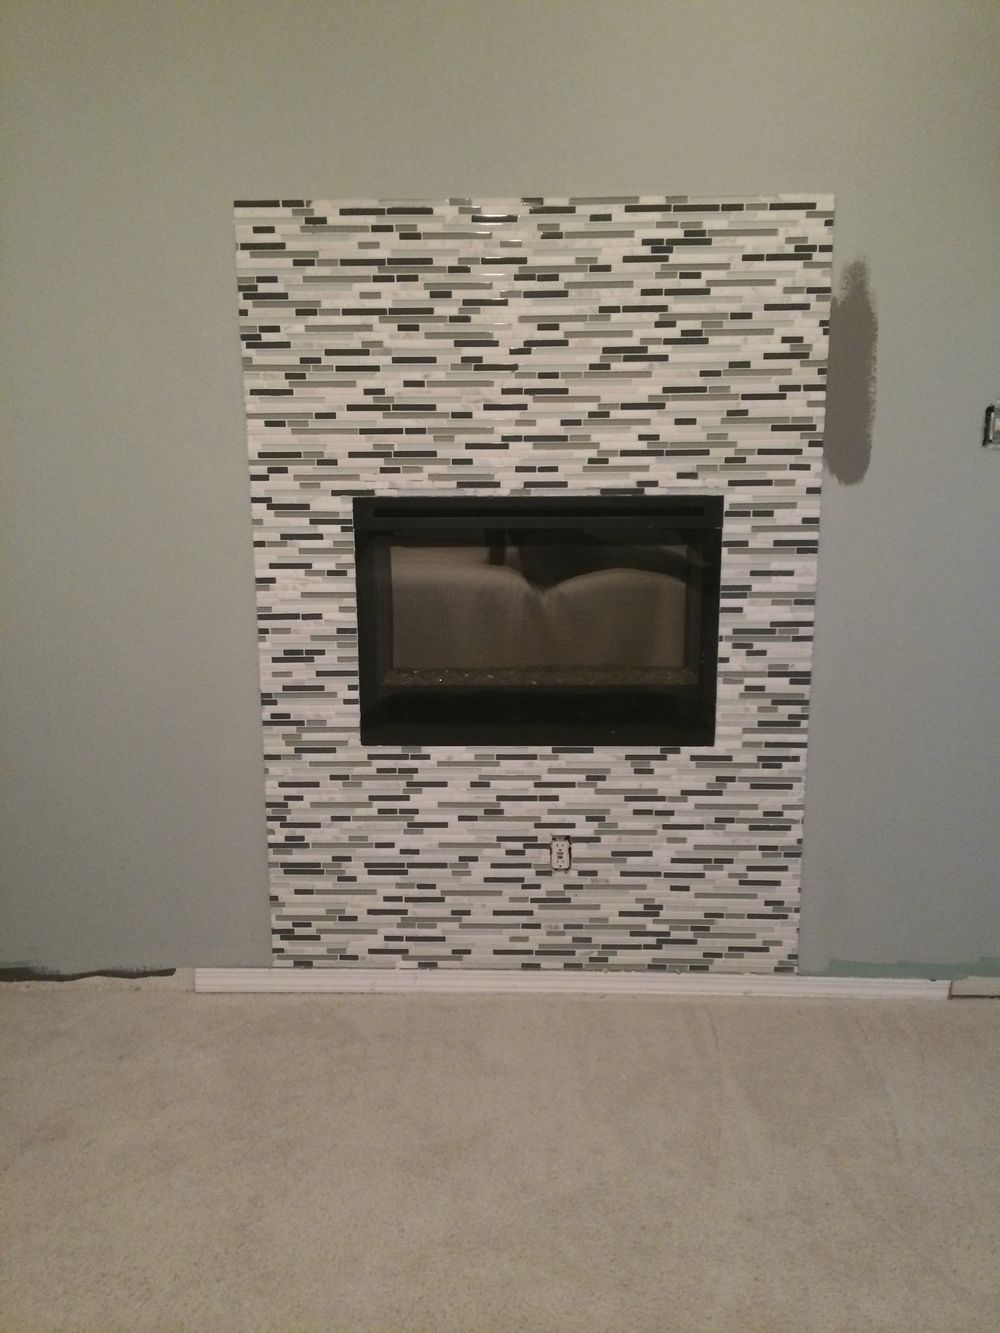 The fireplace wall